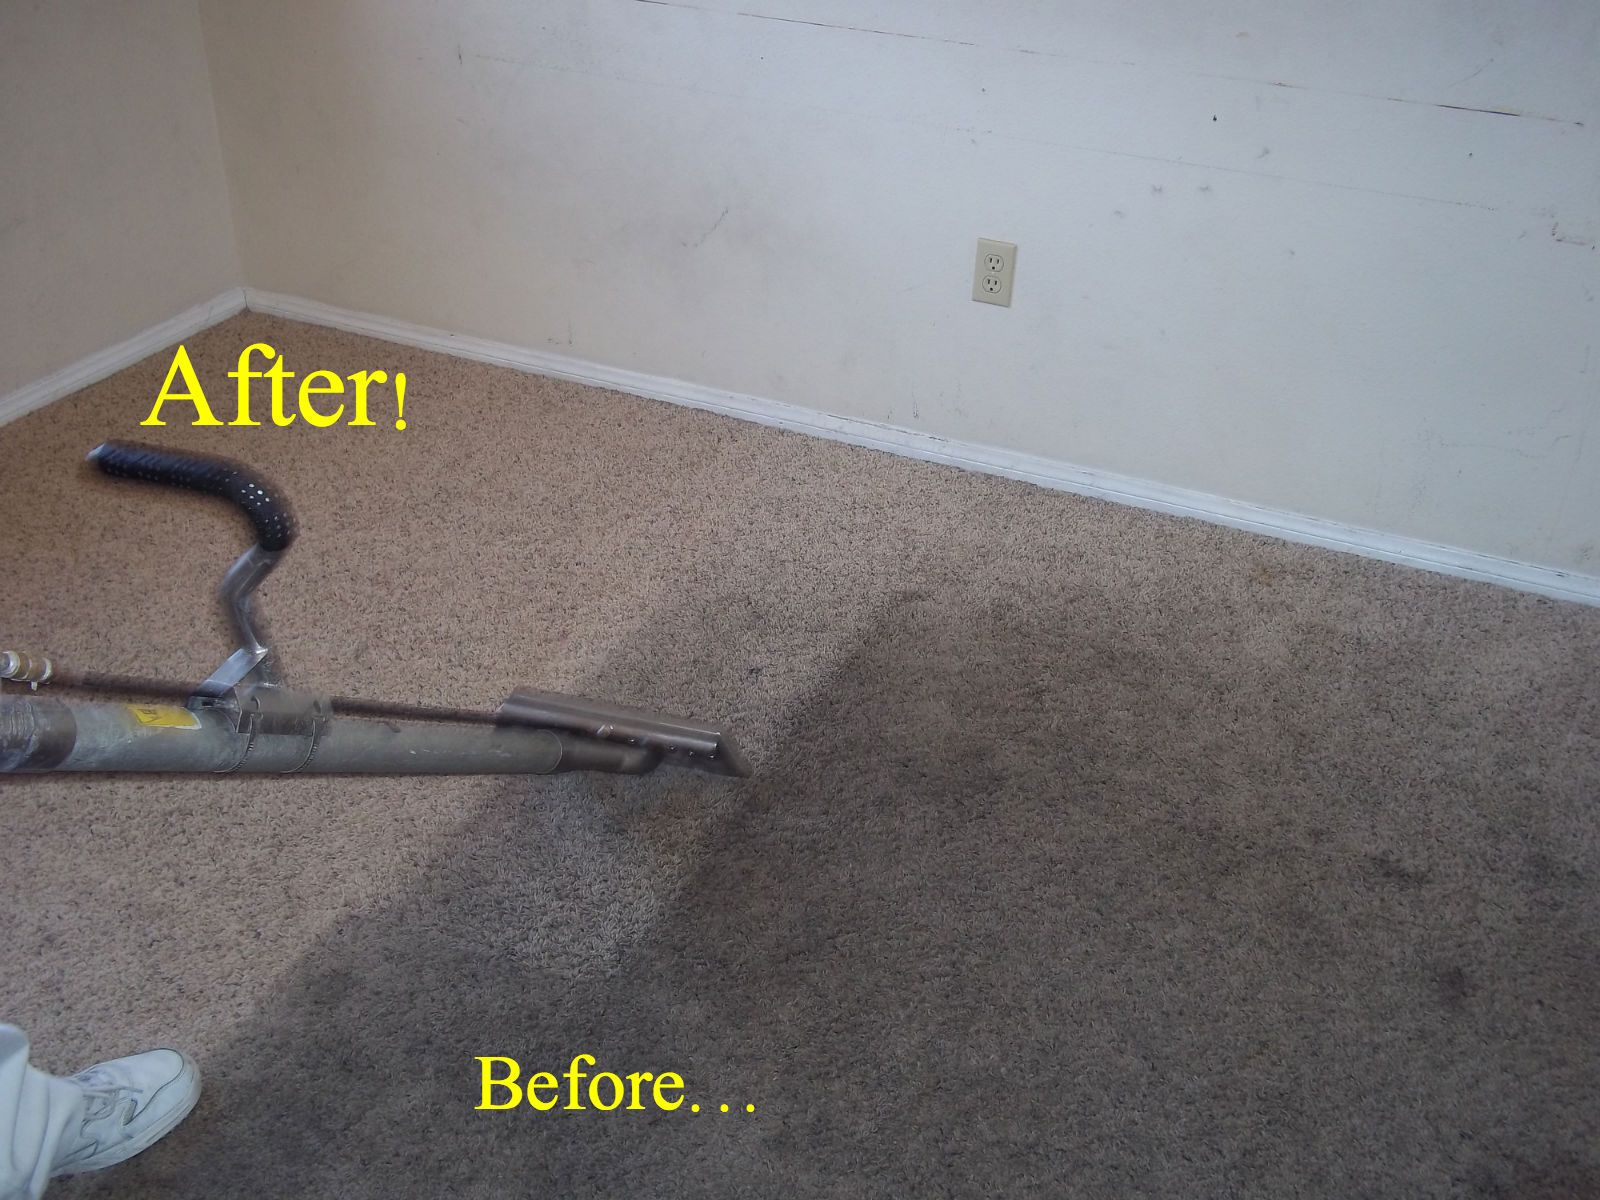 Filthy Carpet Goes Clean Carpet Cleaning Hacks Carpet Cleaning